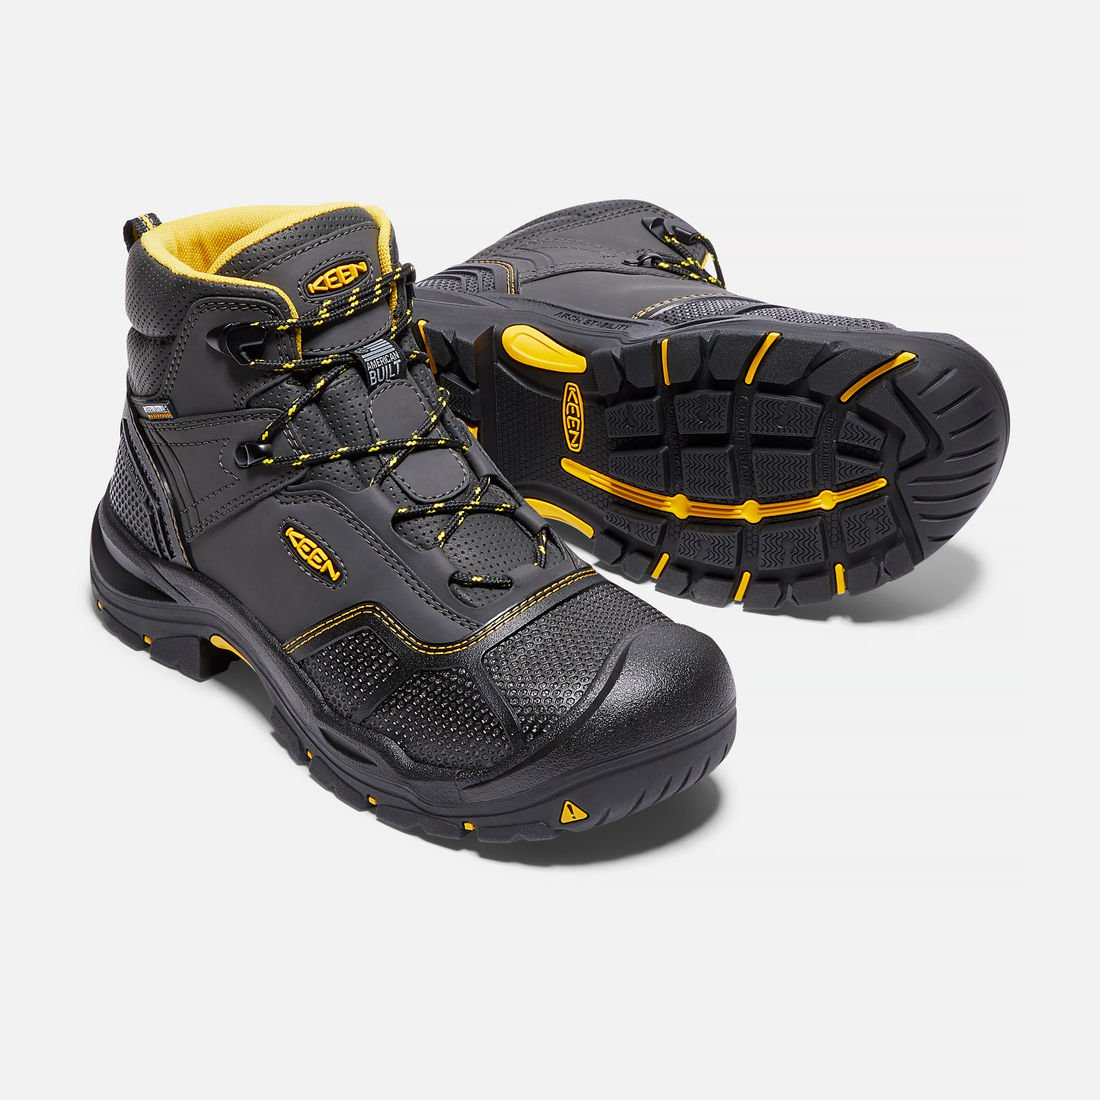 Keen 1017828 Men S Logandale Waterproof Boot Steel Toe